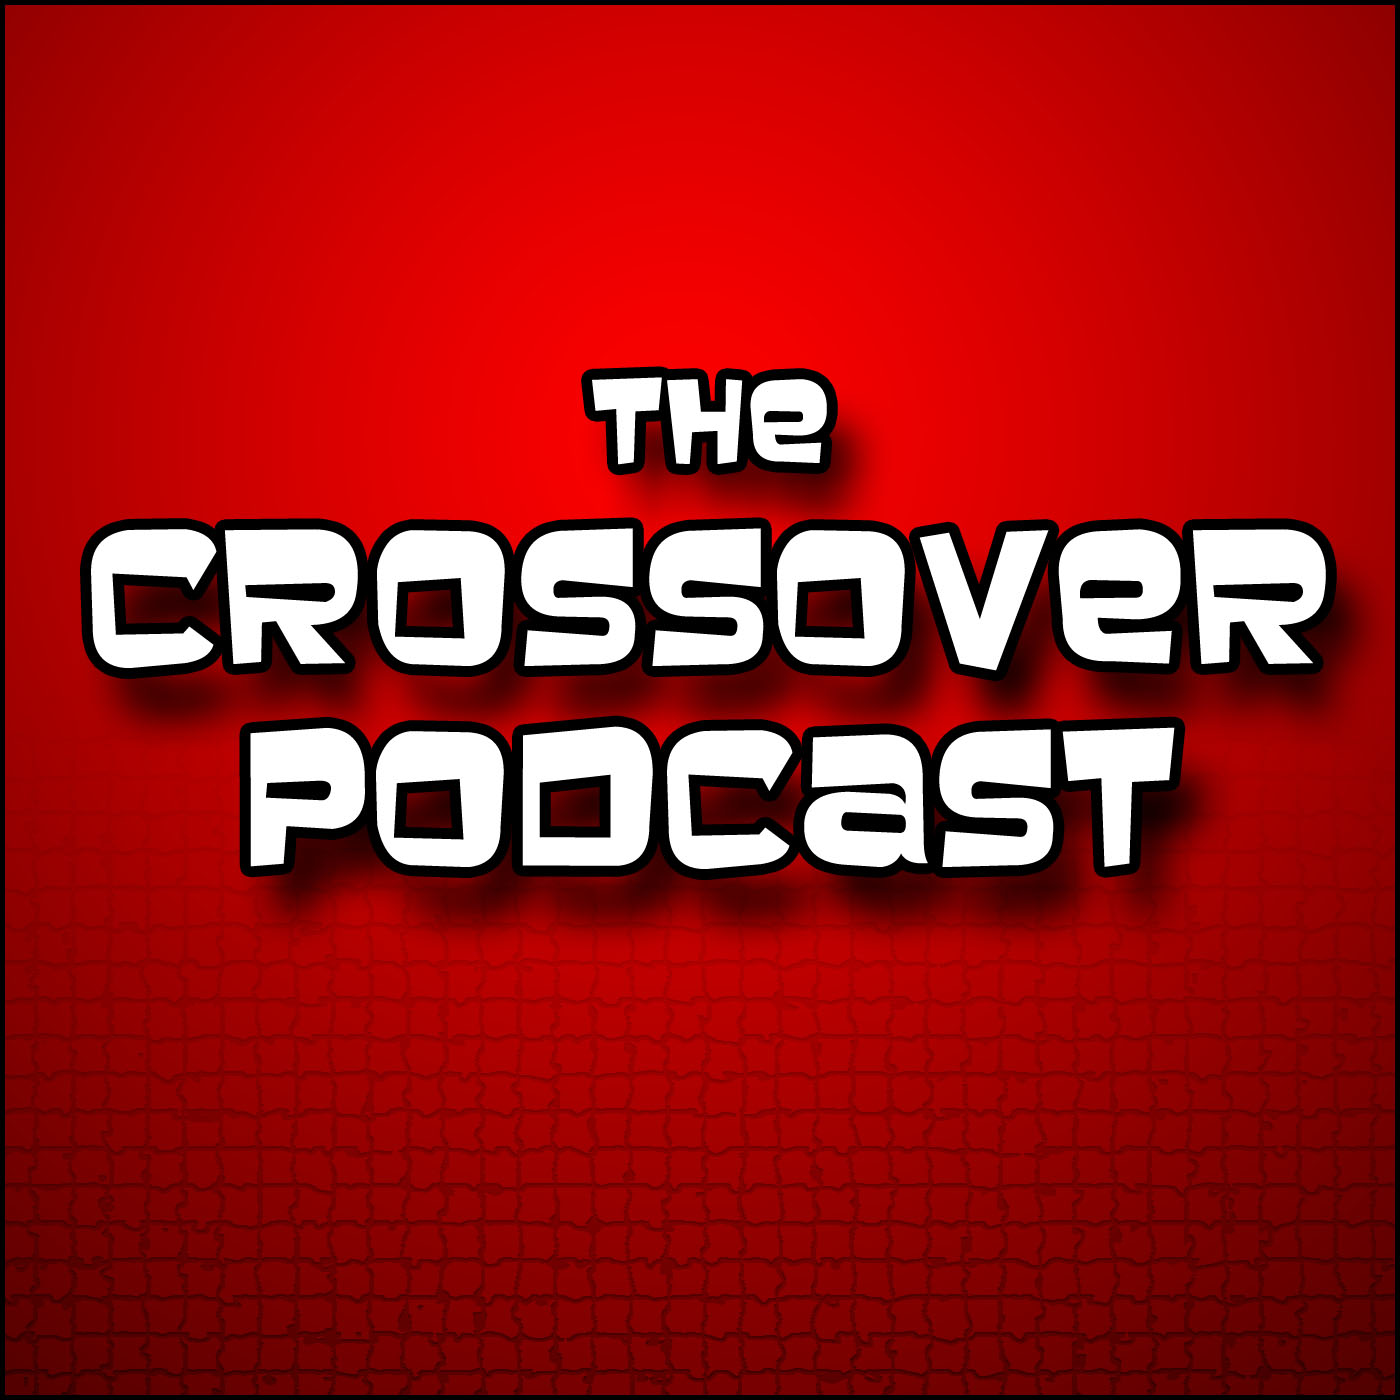 The Crossover Podcast